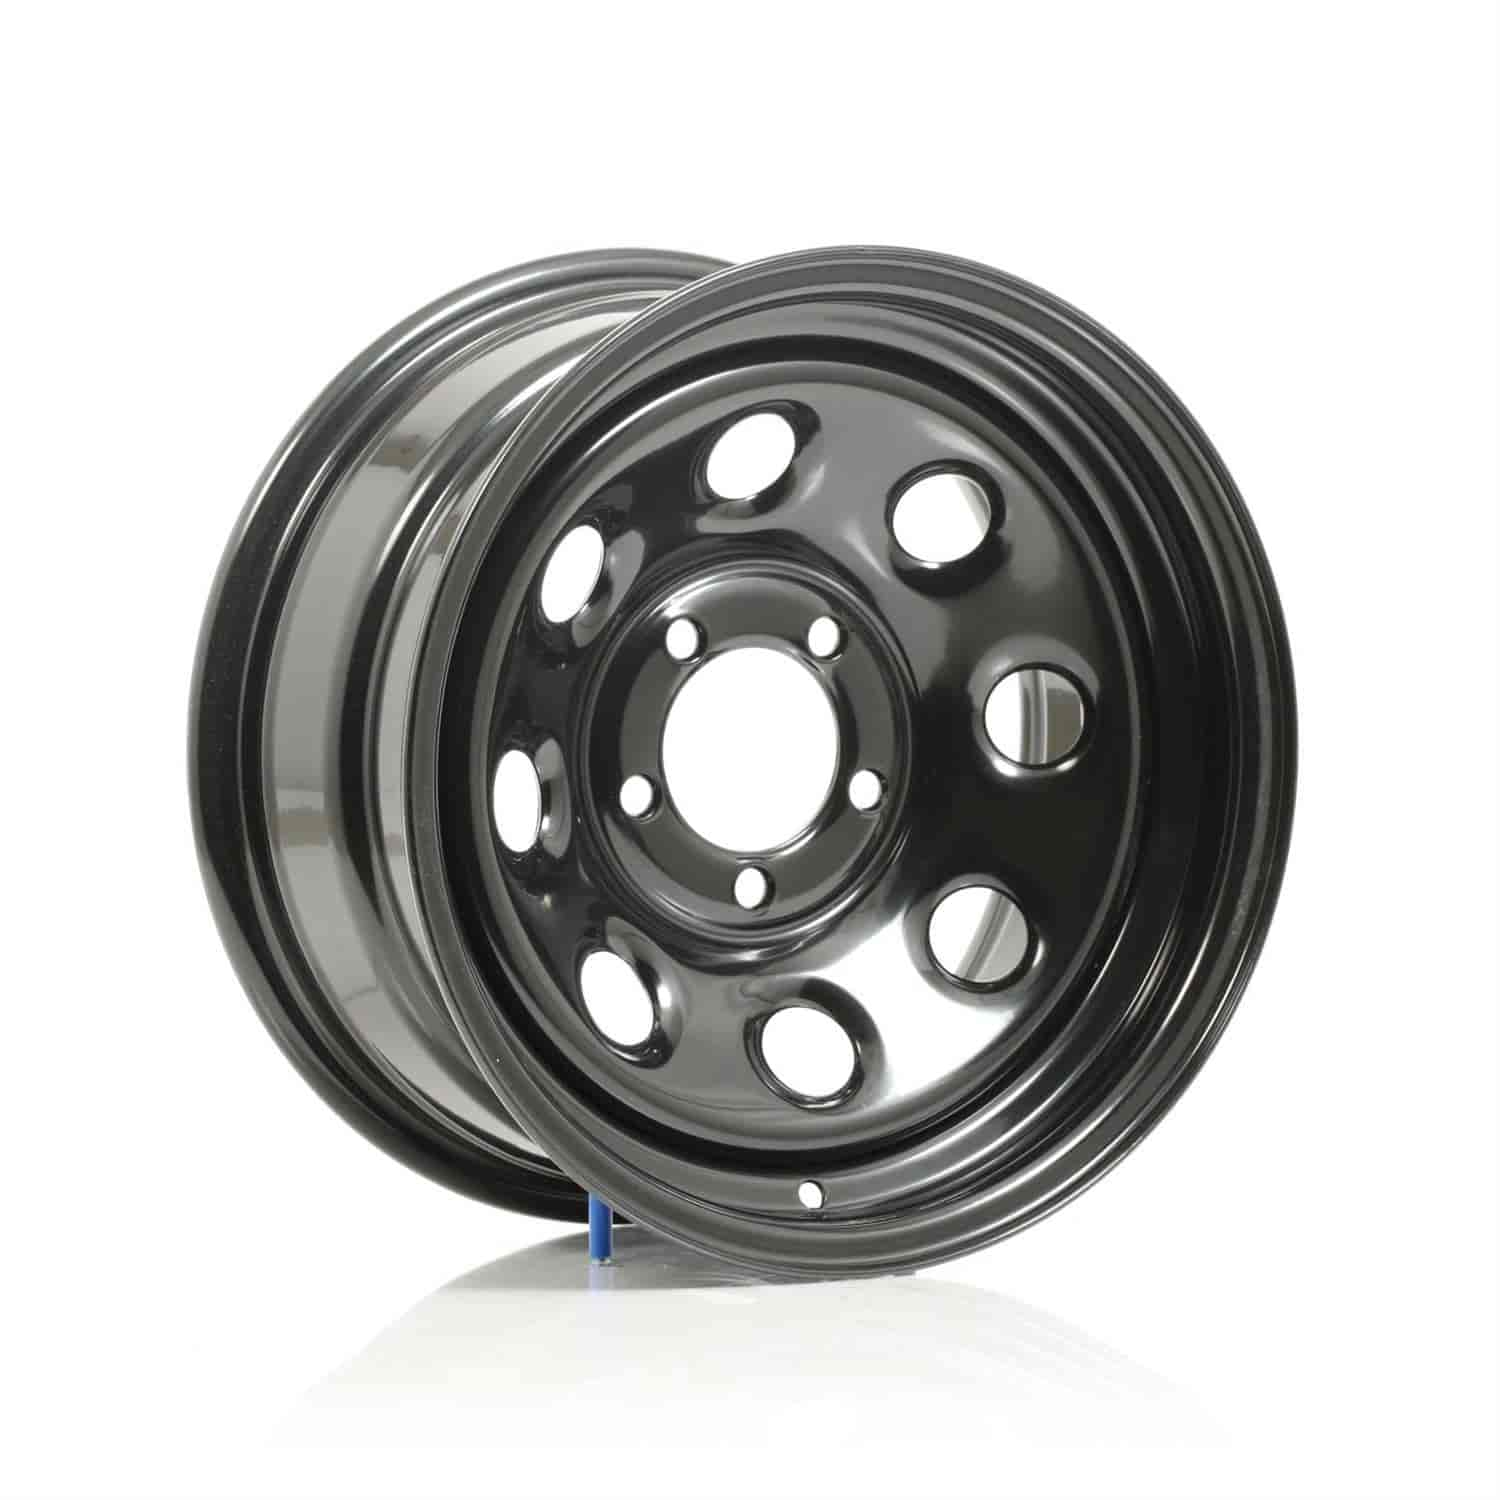 Cragar 3978881 - Cragar Black Soft 8 Wheels